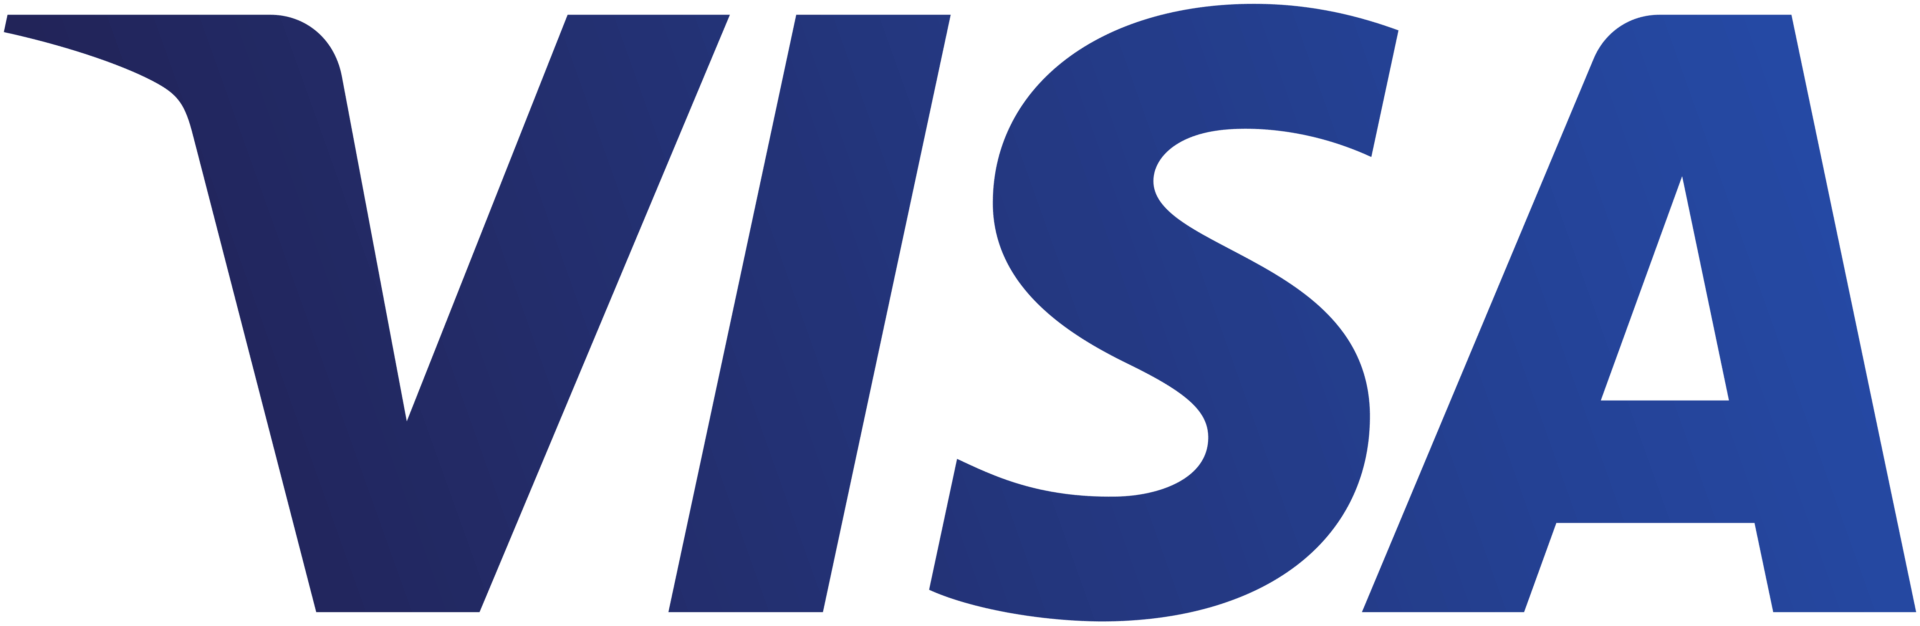 partnership-visa logo